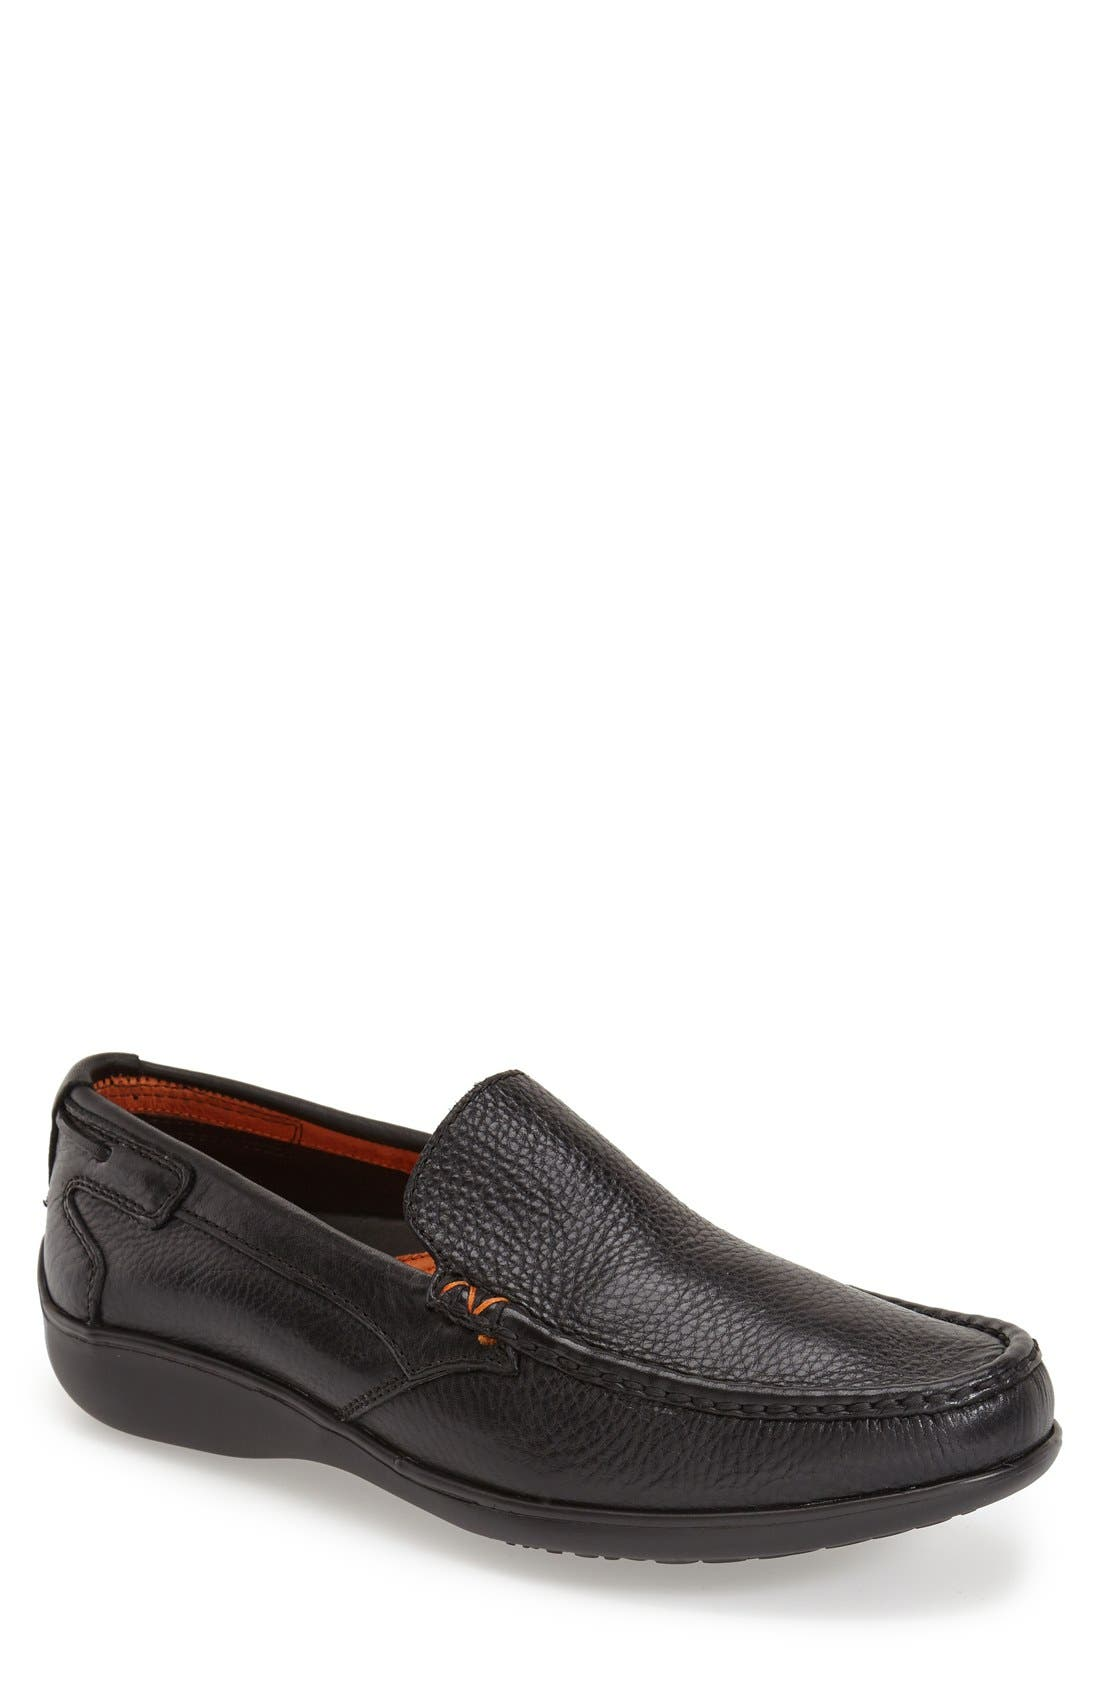 Main Image - Neil M 'Sterling' Loafer